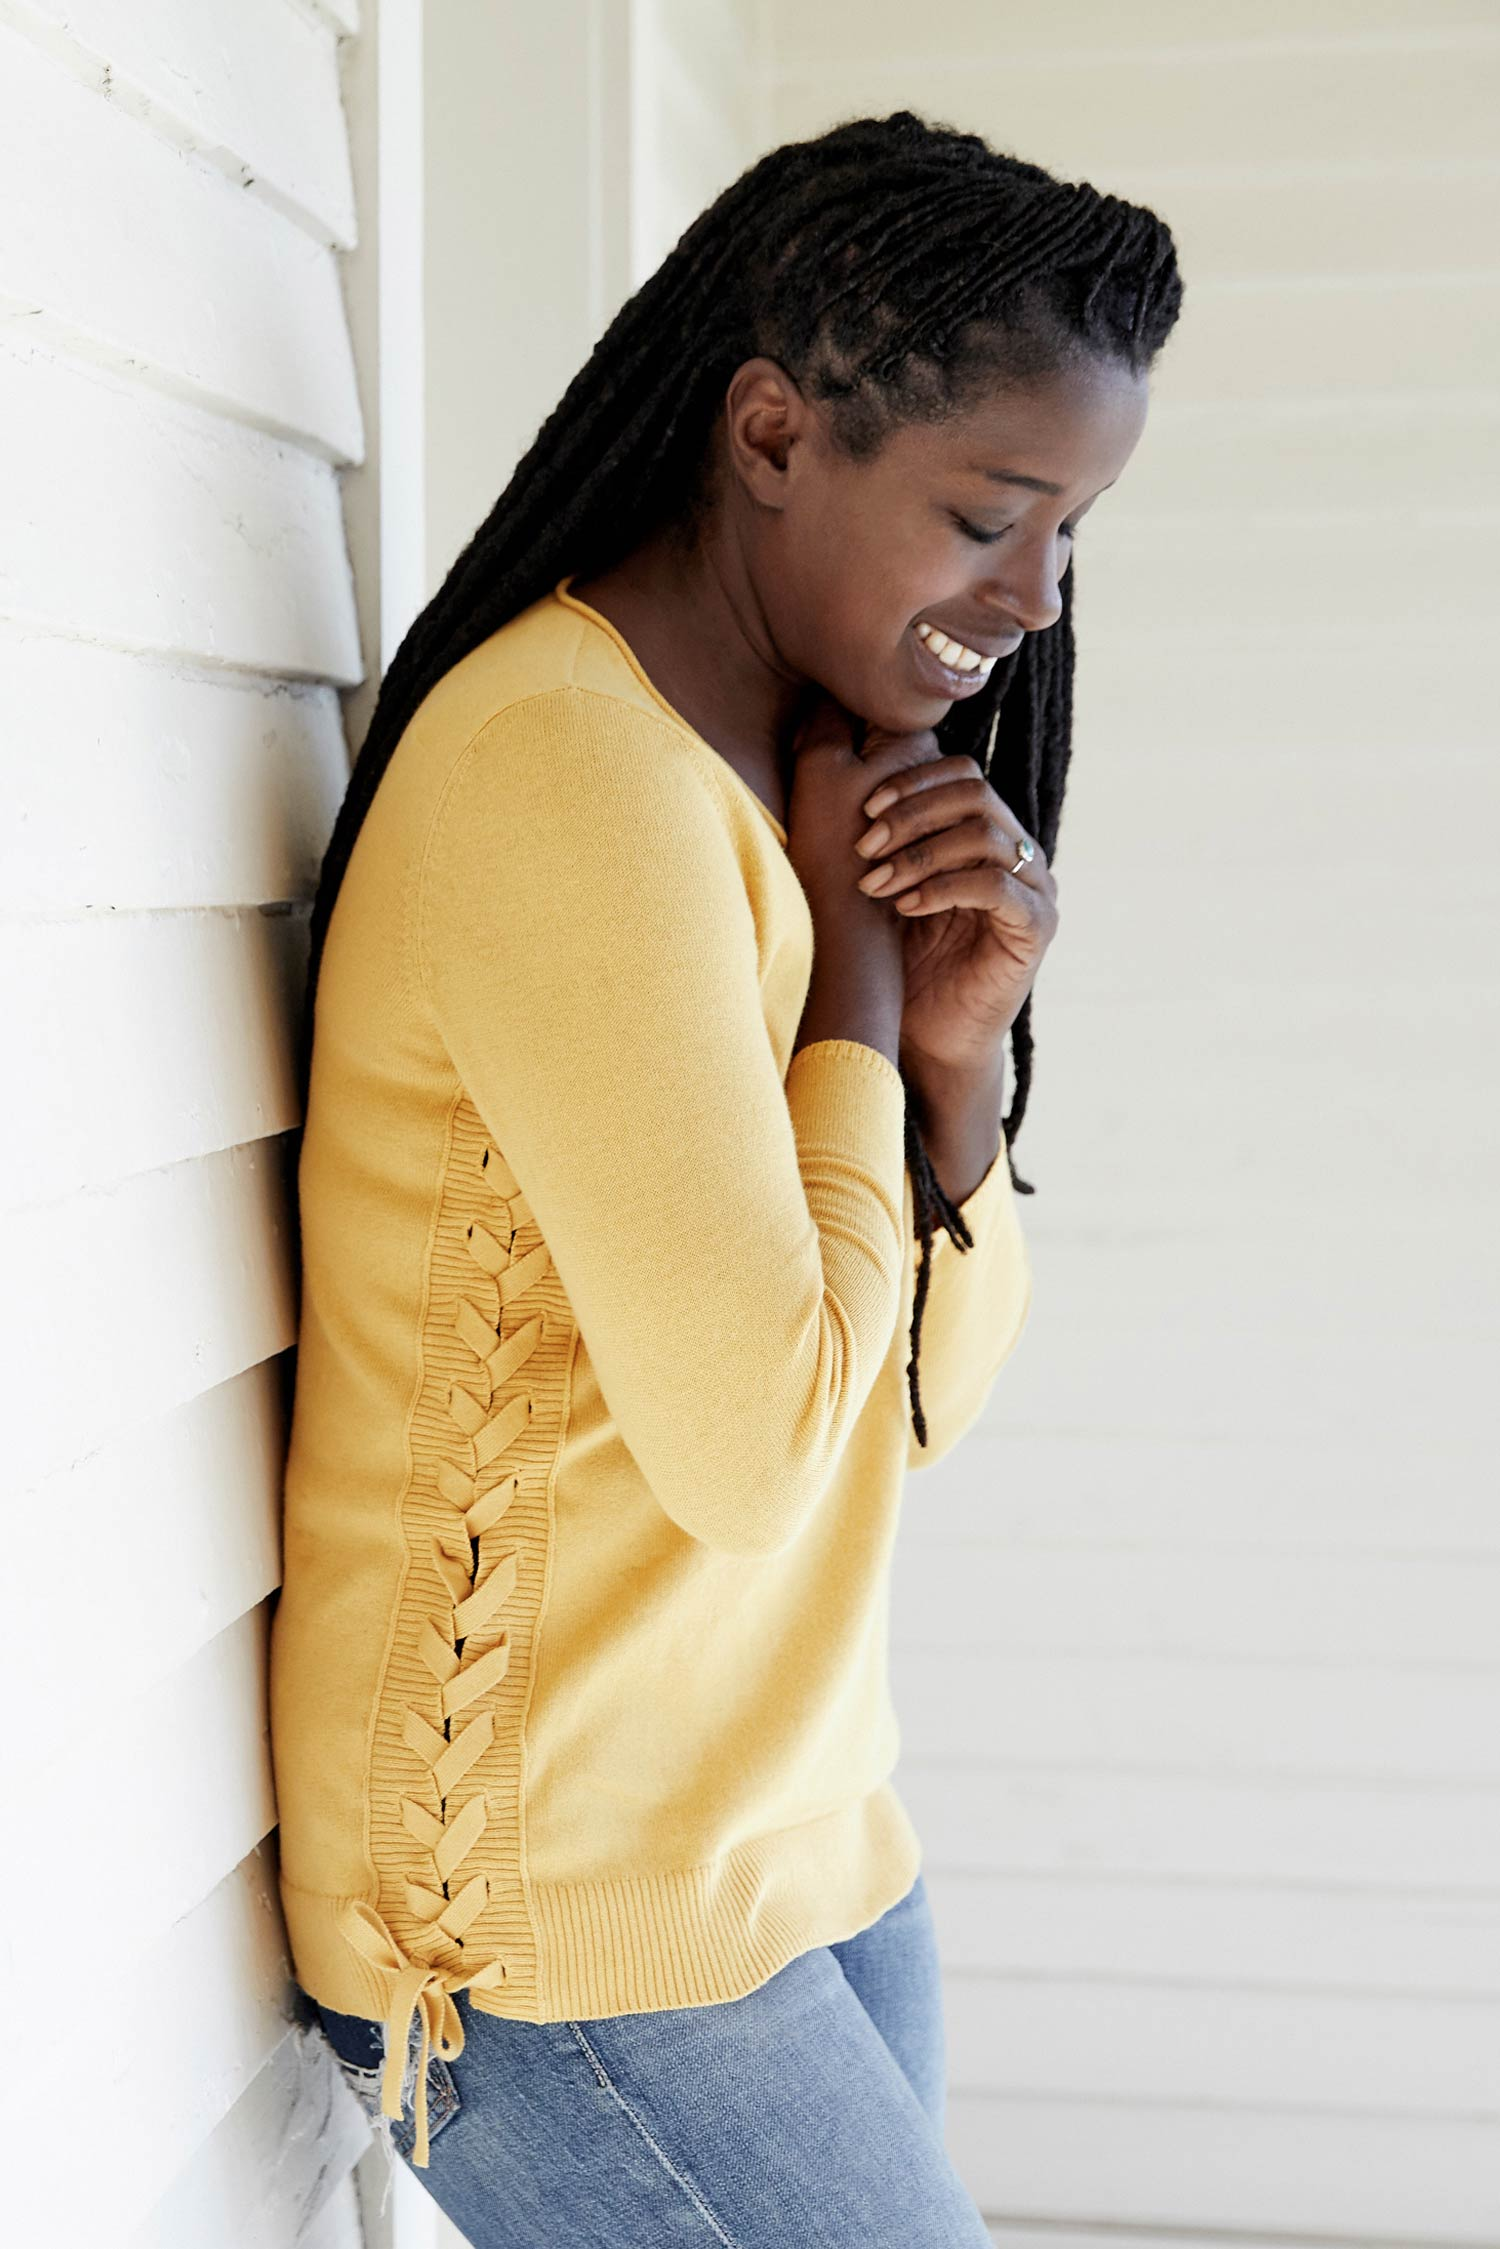 Womens Side Lace Up Pullover Sweater in Yellow | Organic Cotton Clothing